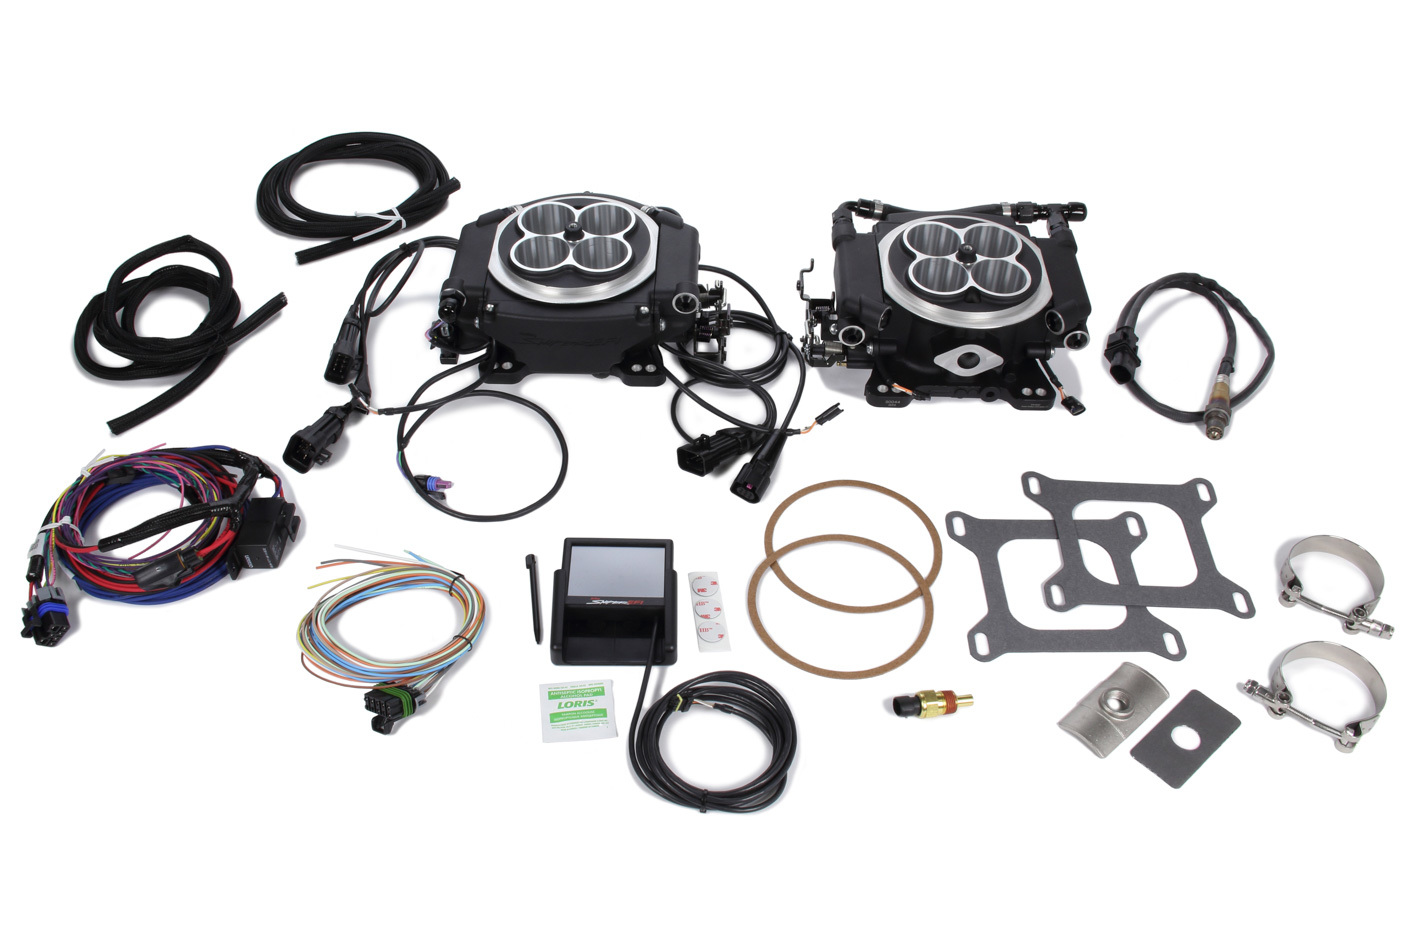 Holley 550-528 Fuel Injection Kit, Sniper EFI 4150 2x4, Throttle Body, Square Bore, 100 lb/hr Injectors, 1600 CFM, Aluminum, Black, Kit